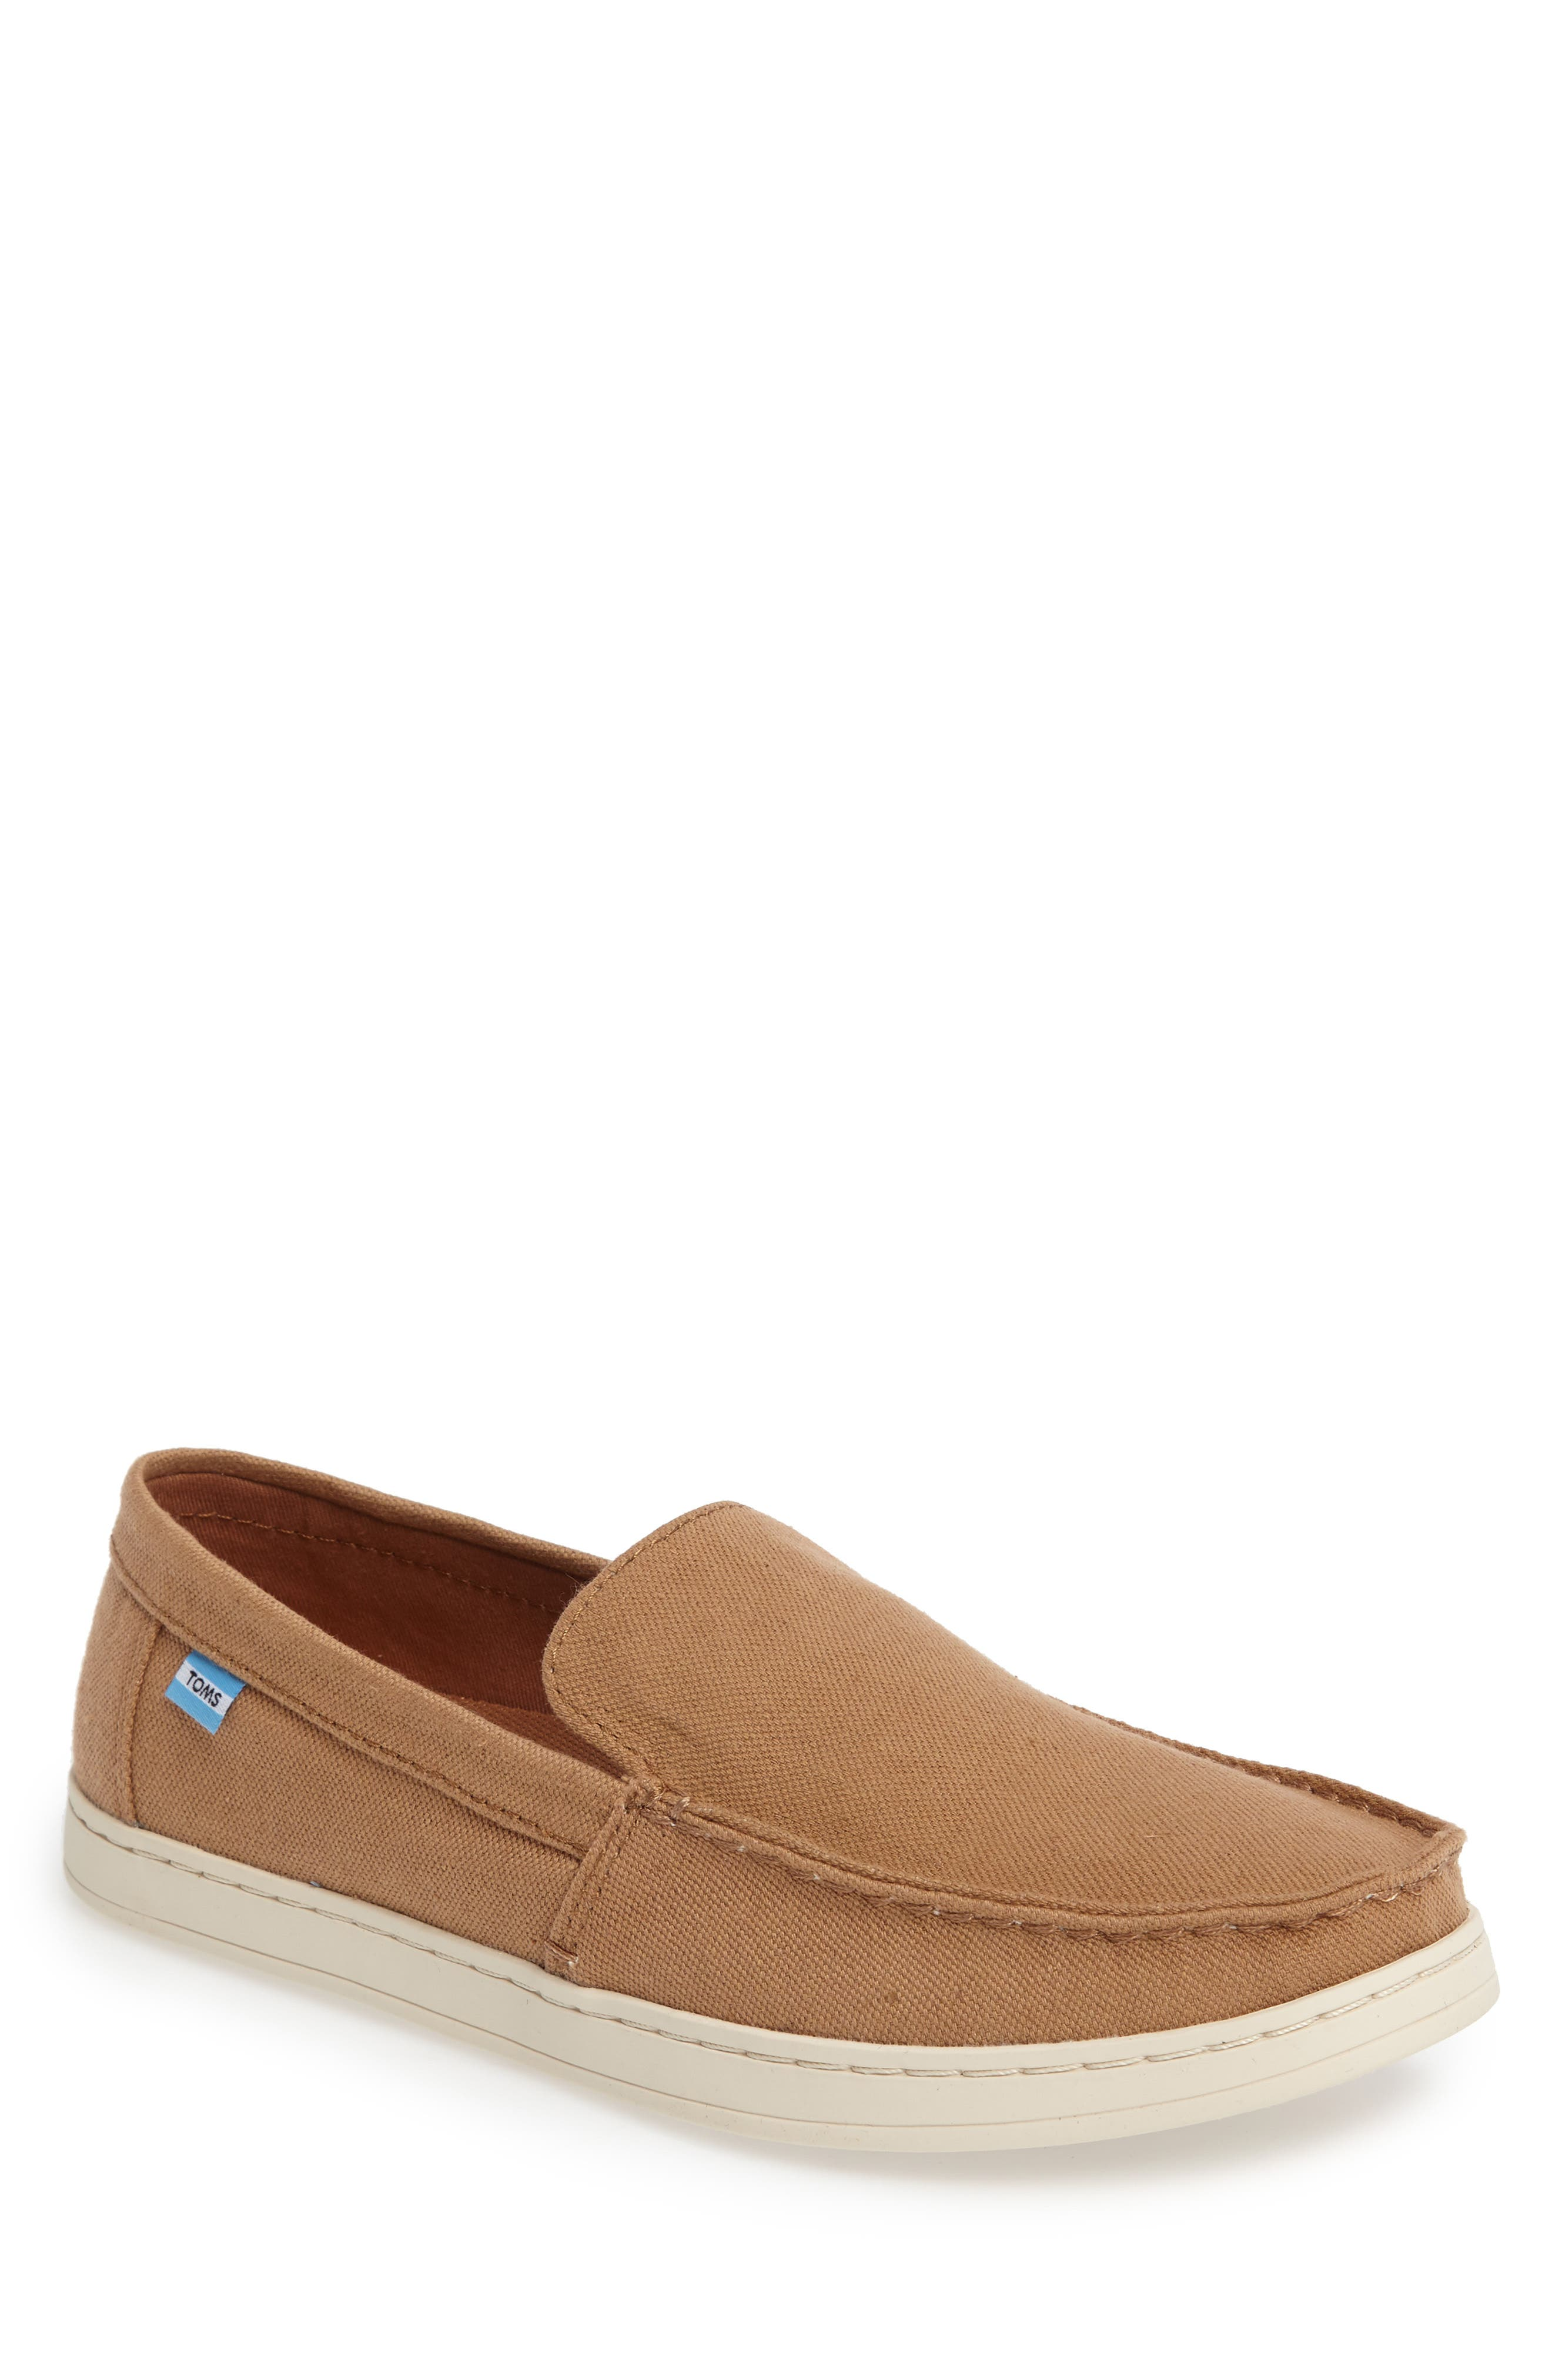 Aiden Slip-On Loafer,                         Main,                         color, Toffee